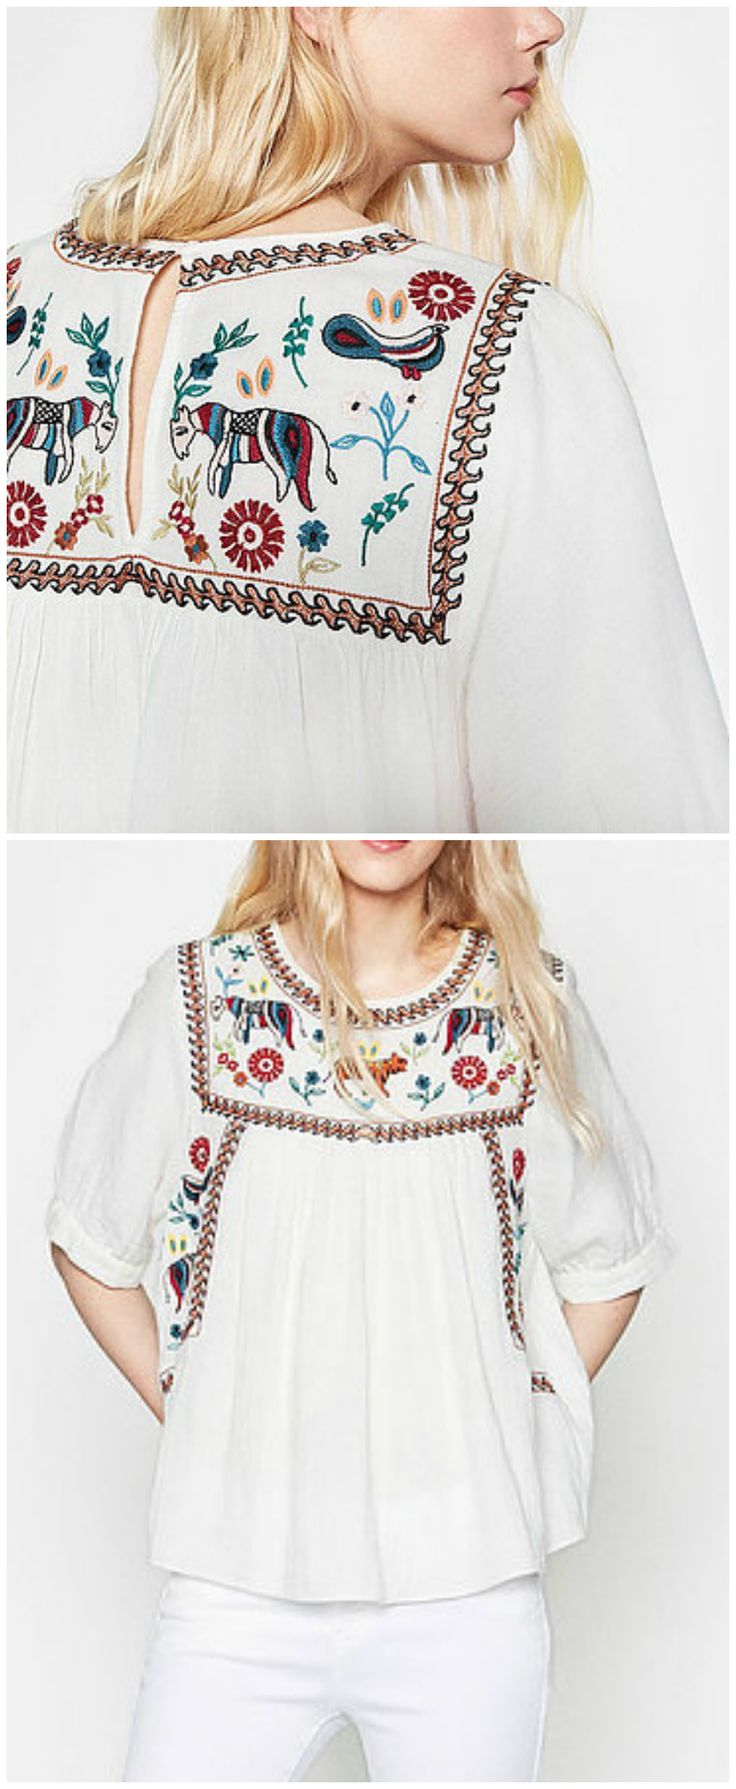 $36 - A Gypsy Embroidery Top from Pasaboho. This top exhibits brilliant colours with unique embroidered pattern.